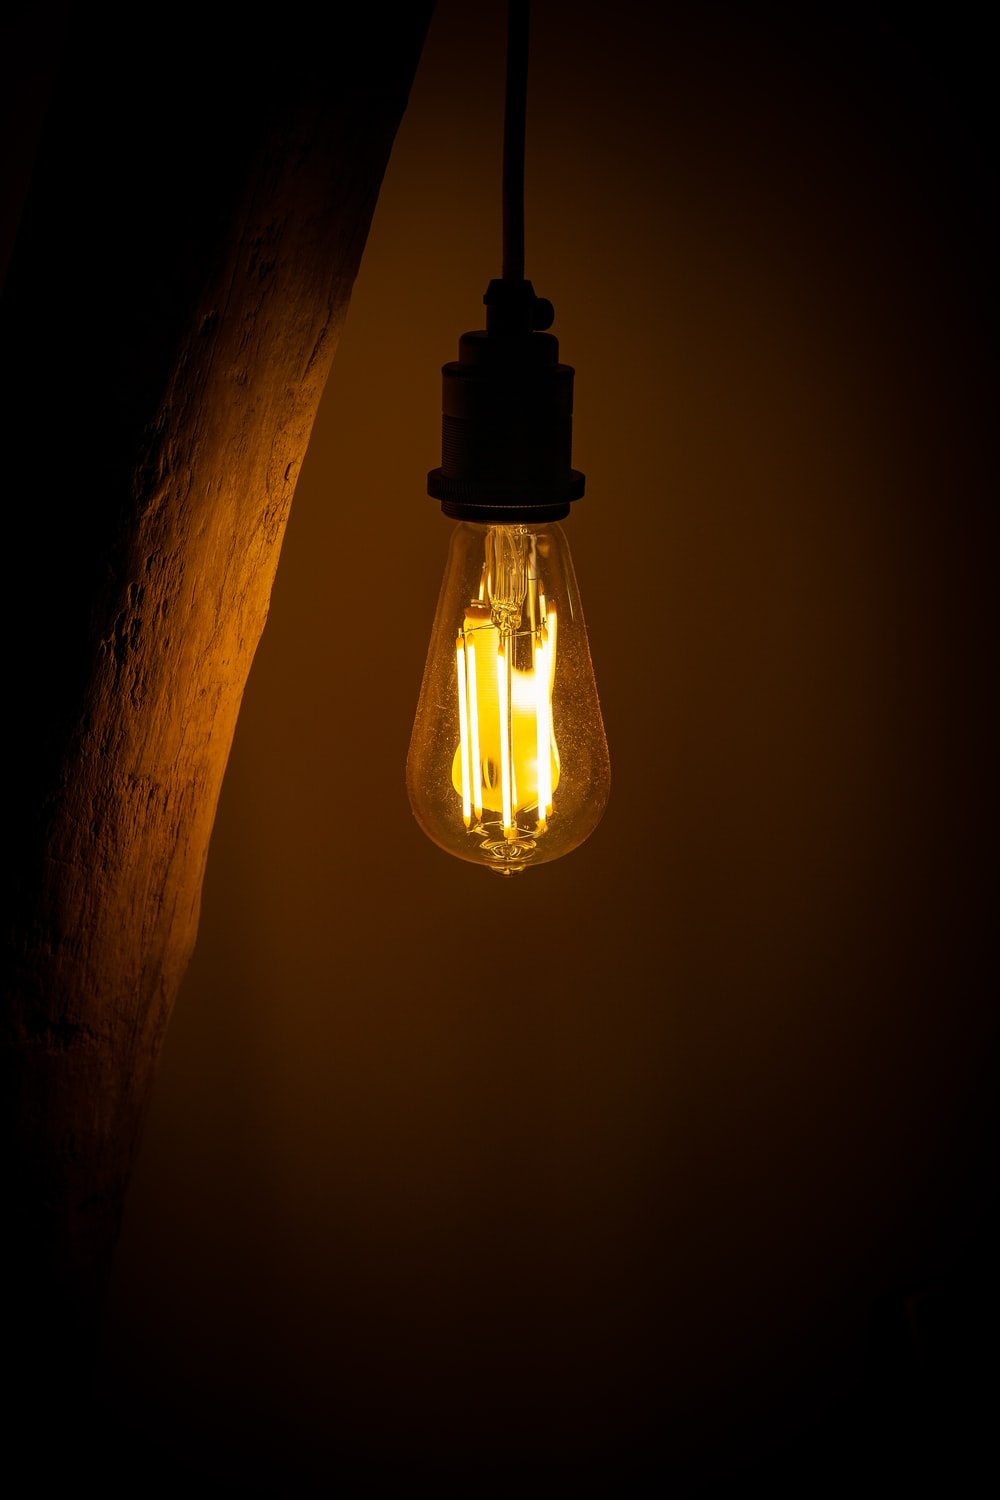 lighted incandescent lamp